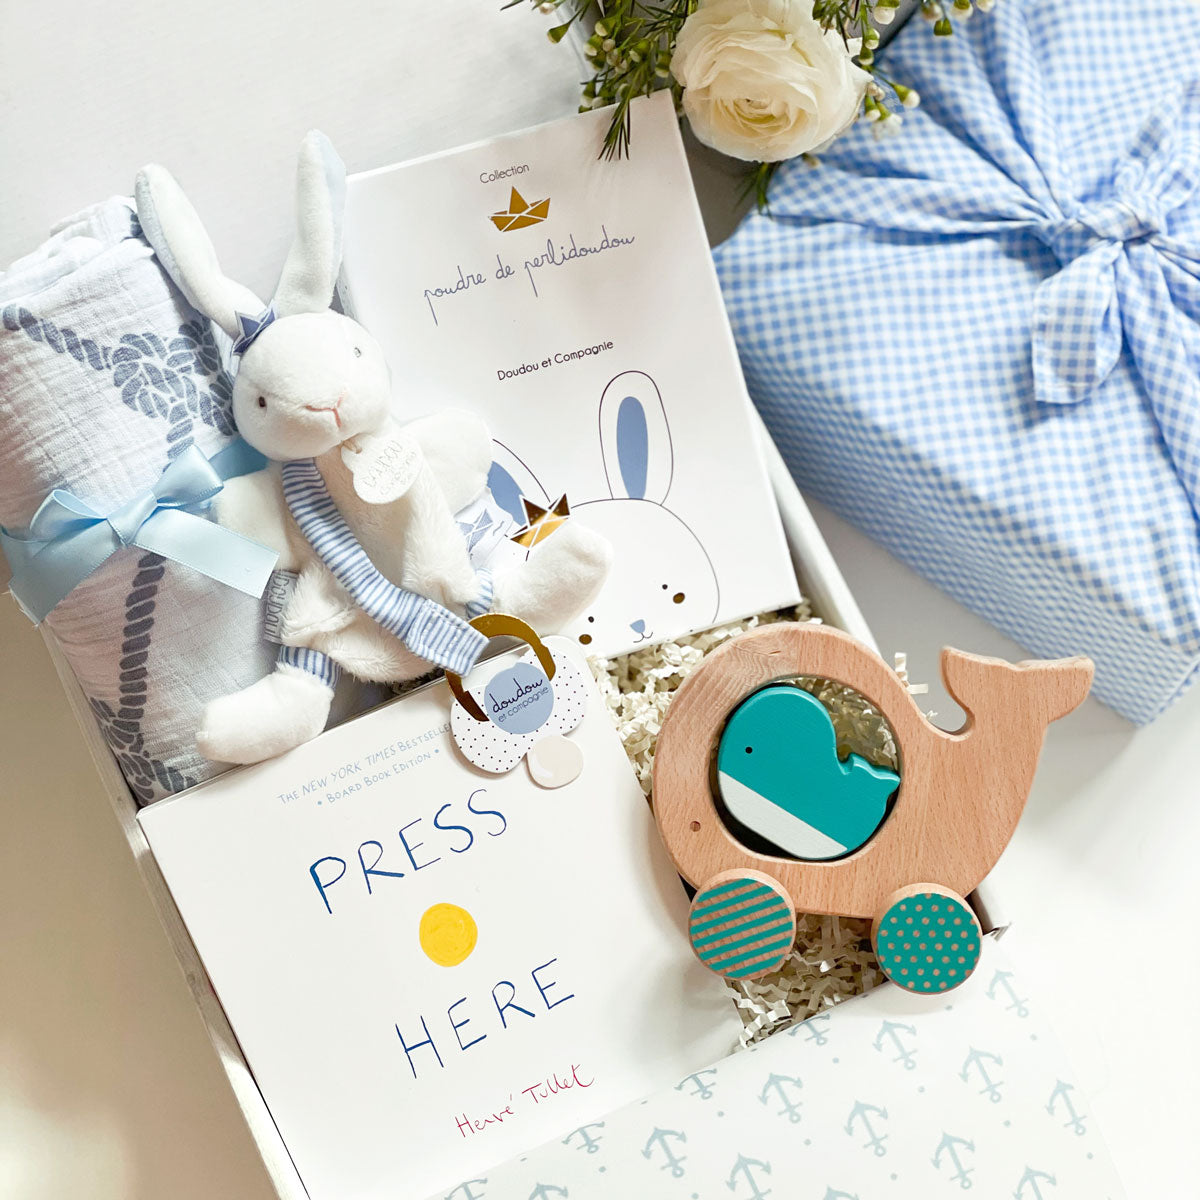 kadoo baby boy gift box in Furoshiki blue checkers. Inside: bunny plush, press here board book, wooden whale & swaddle.